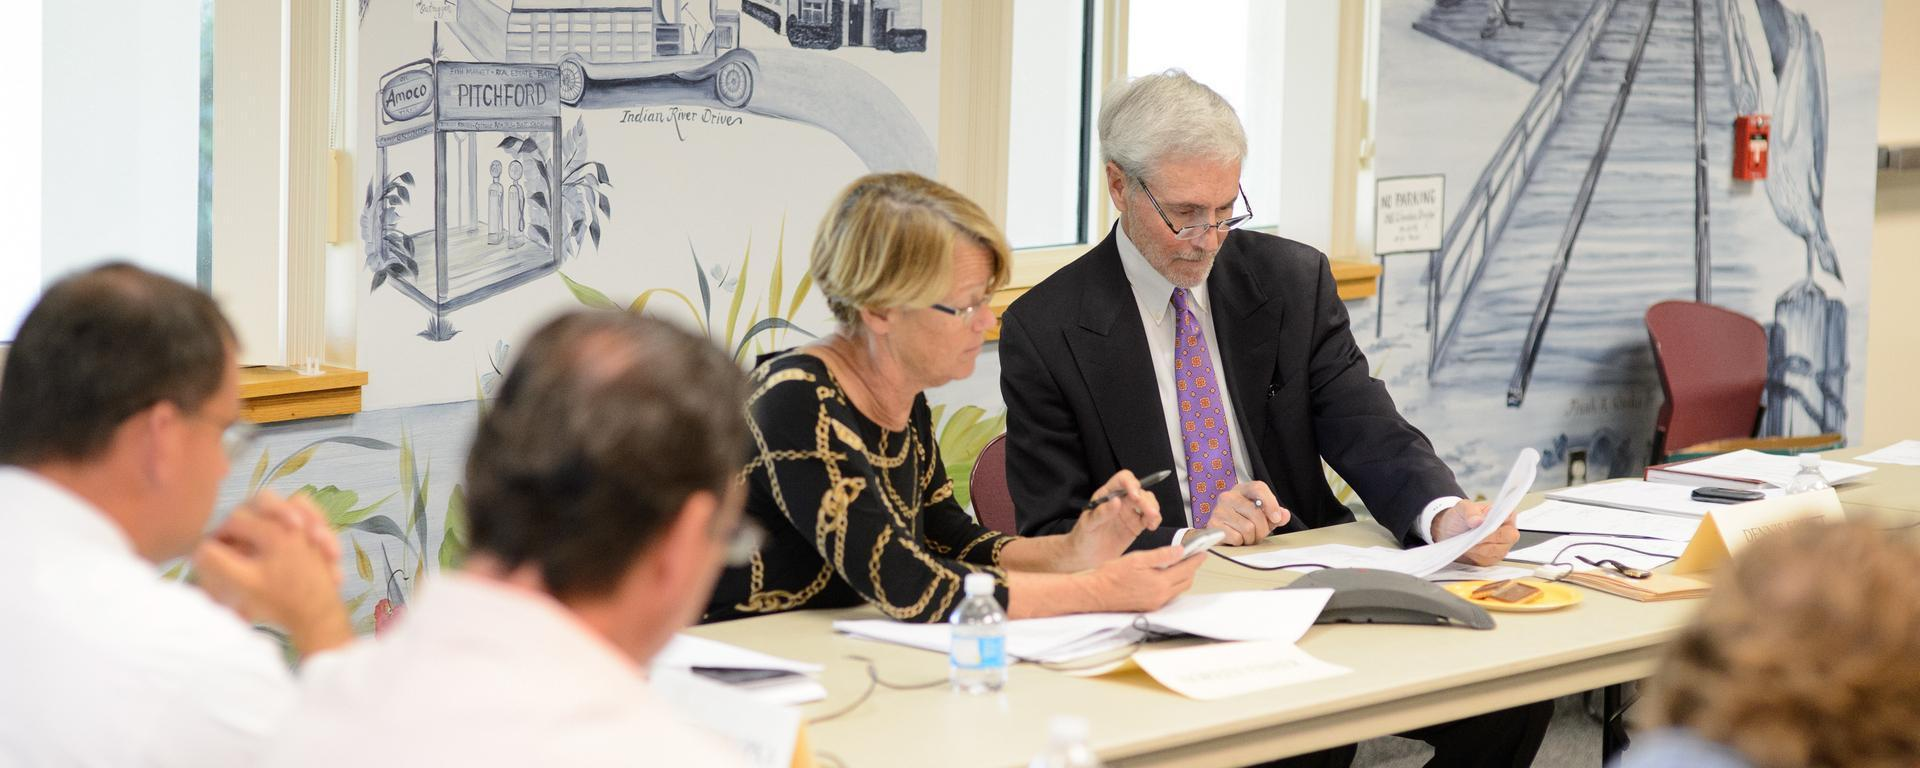 Image focusing on two people at a business meeting reviewing a report